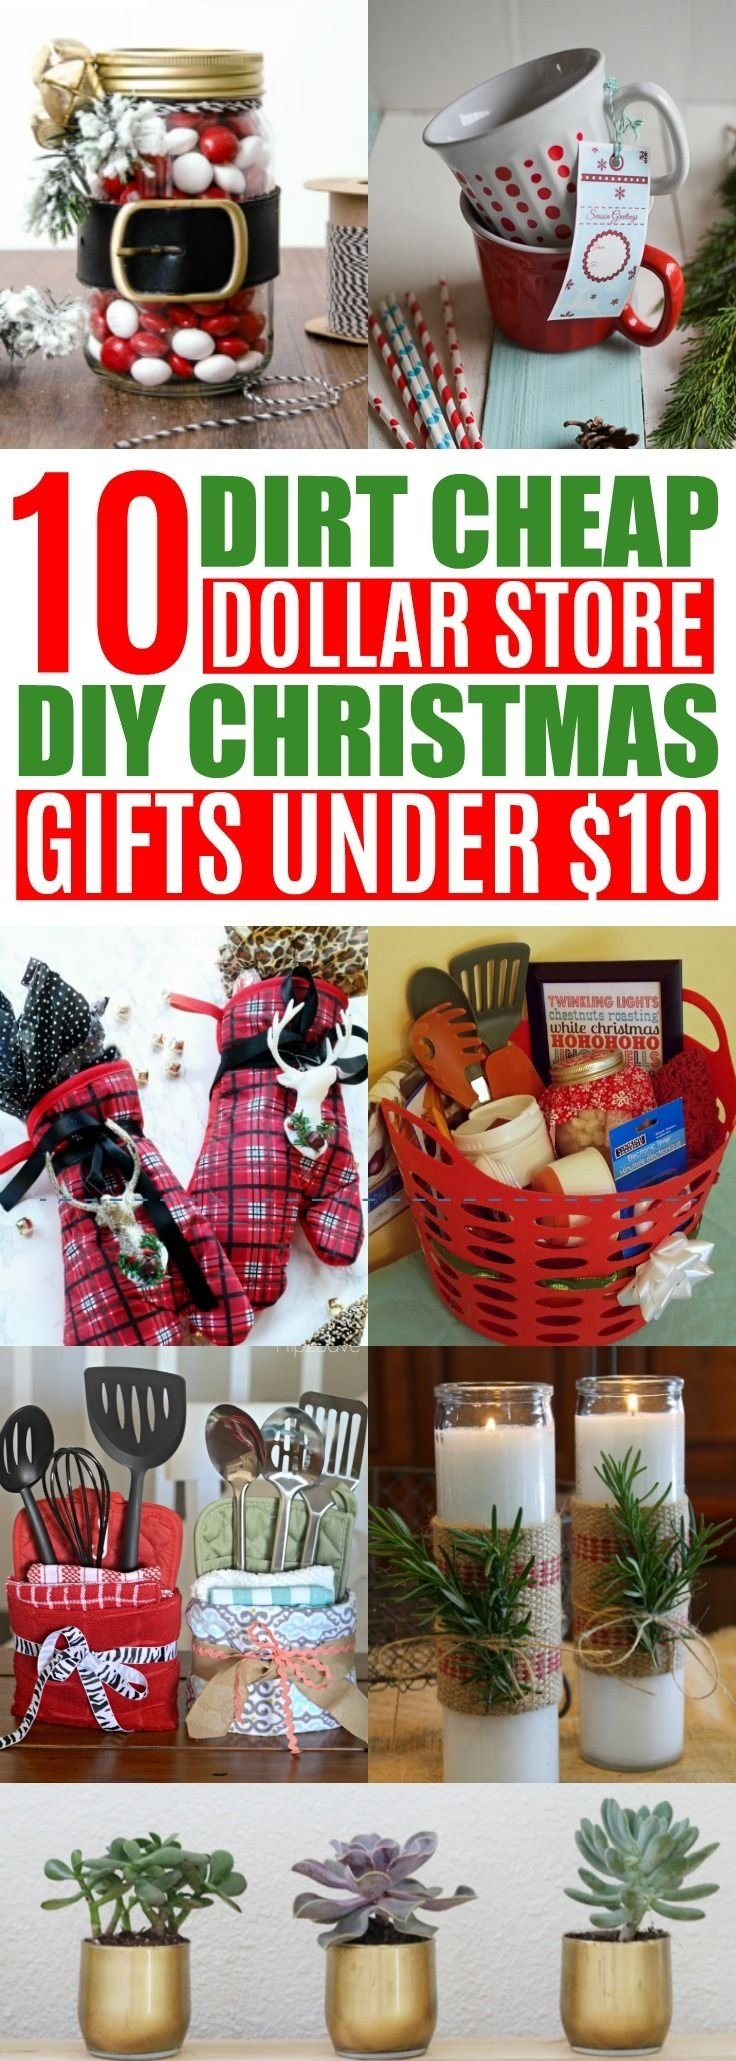 10 Awesome Inexpensive Christmas Gift Ideas For Friends